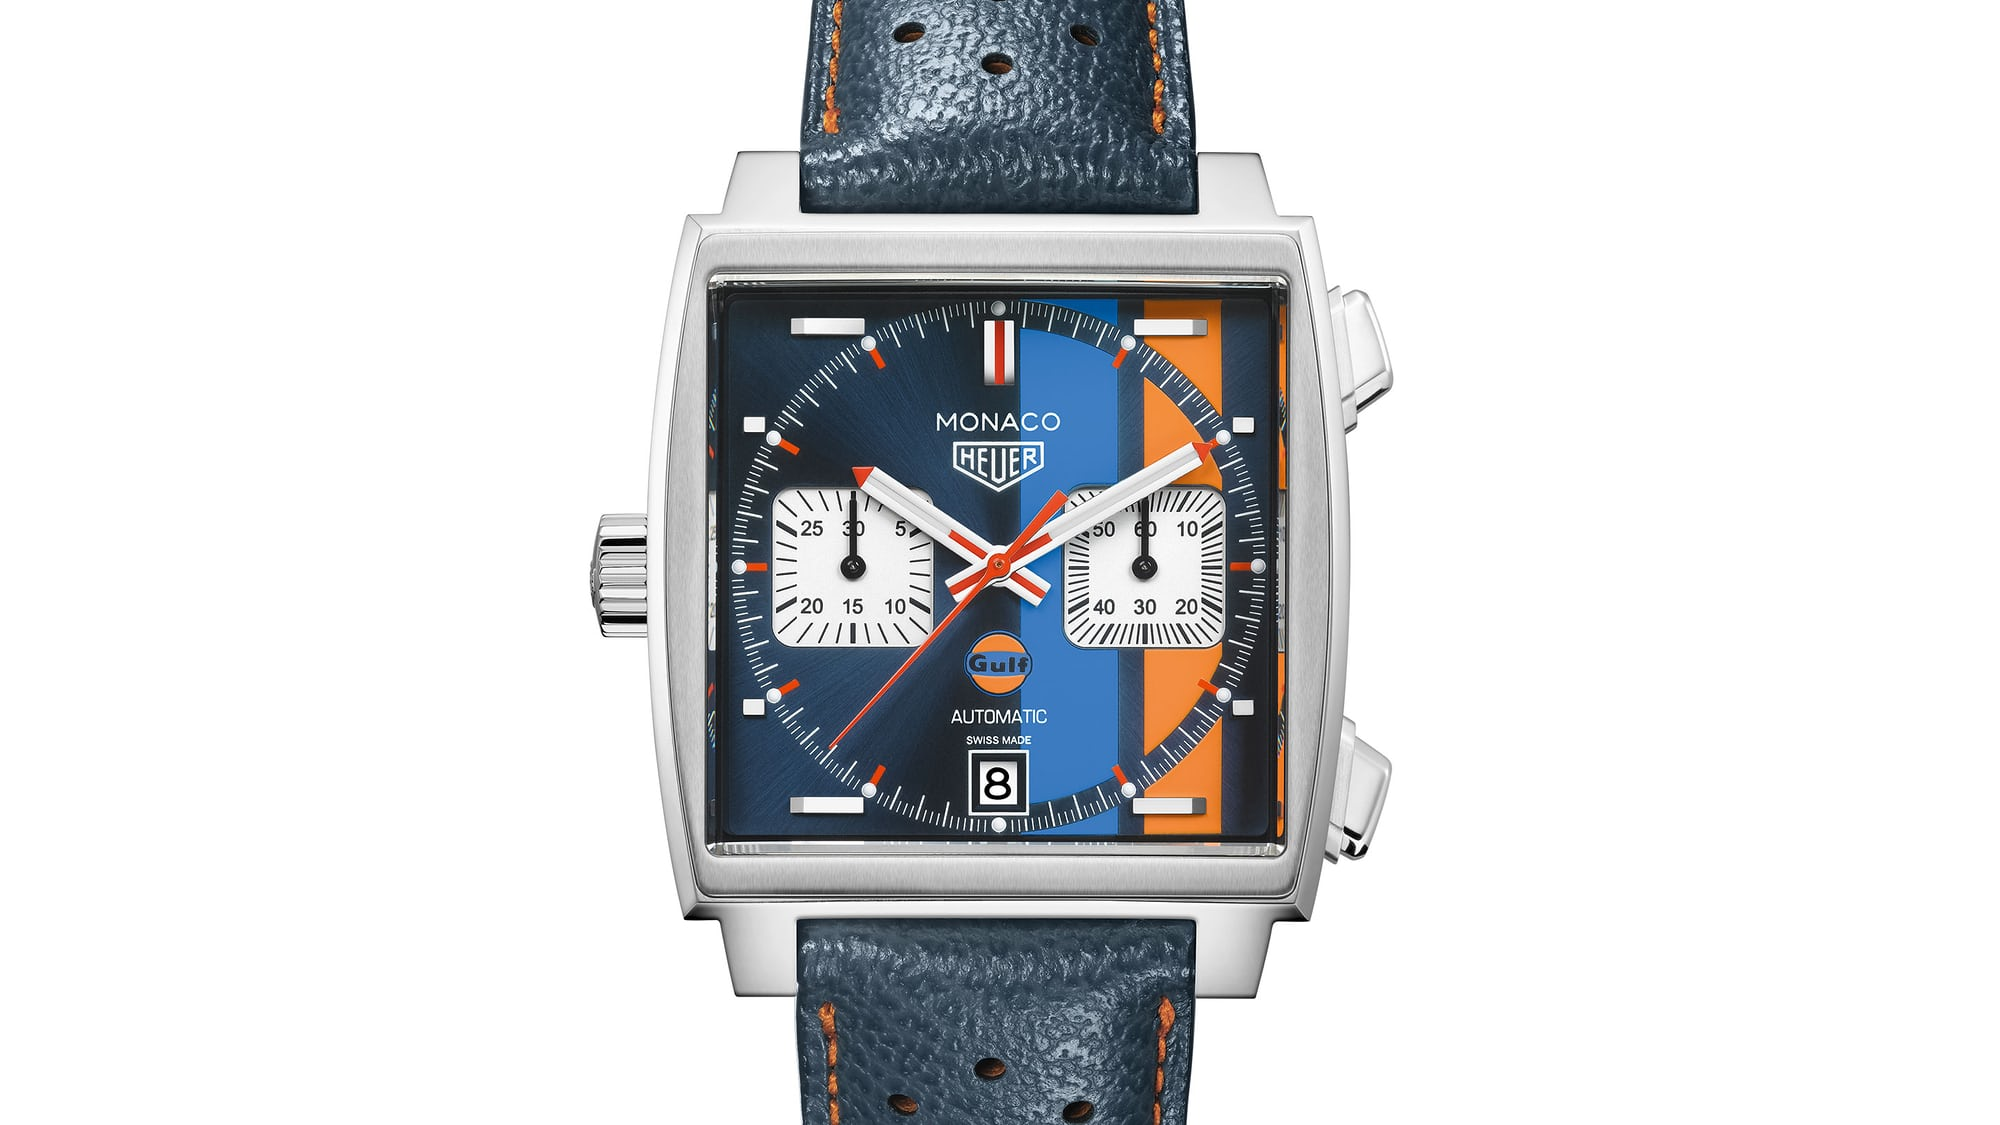 Monaco 1.jpg?ixlib=rails 1.1 Introducing: The TAG Heuer Monaco Gulf Special Edition For 50th Anniversary Of Gulf Oil Stripes Introducing: The TAG Heuer Monaco Gulf Special Edition For 50th Anniversary Of Gulf Oil Stripes monaco 1